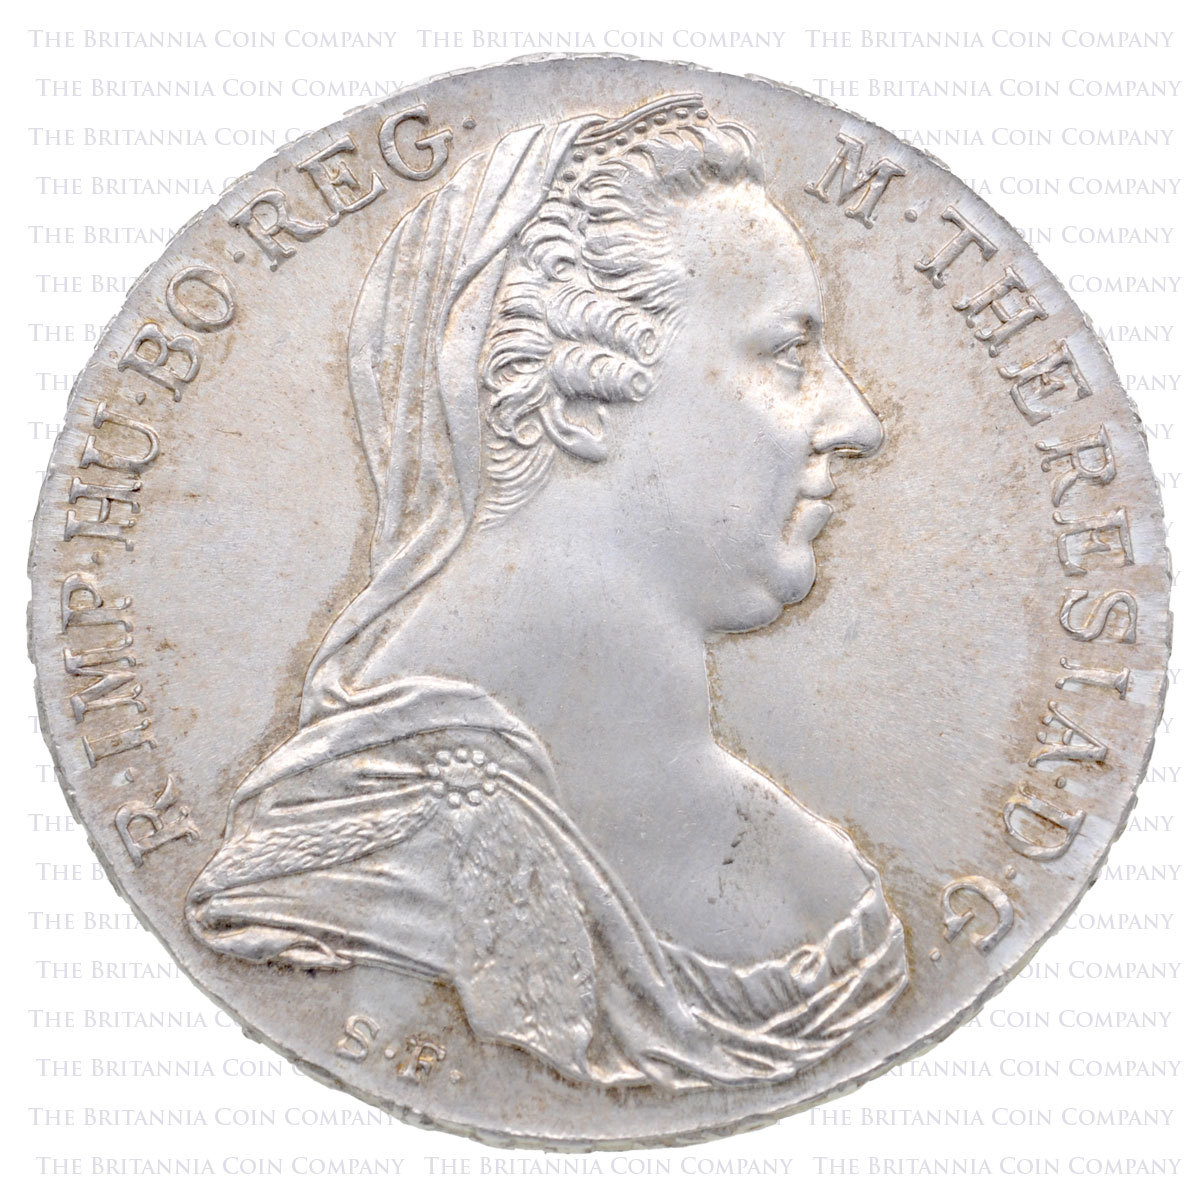 The Maria Theresa Thaler Obverse